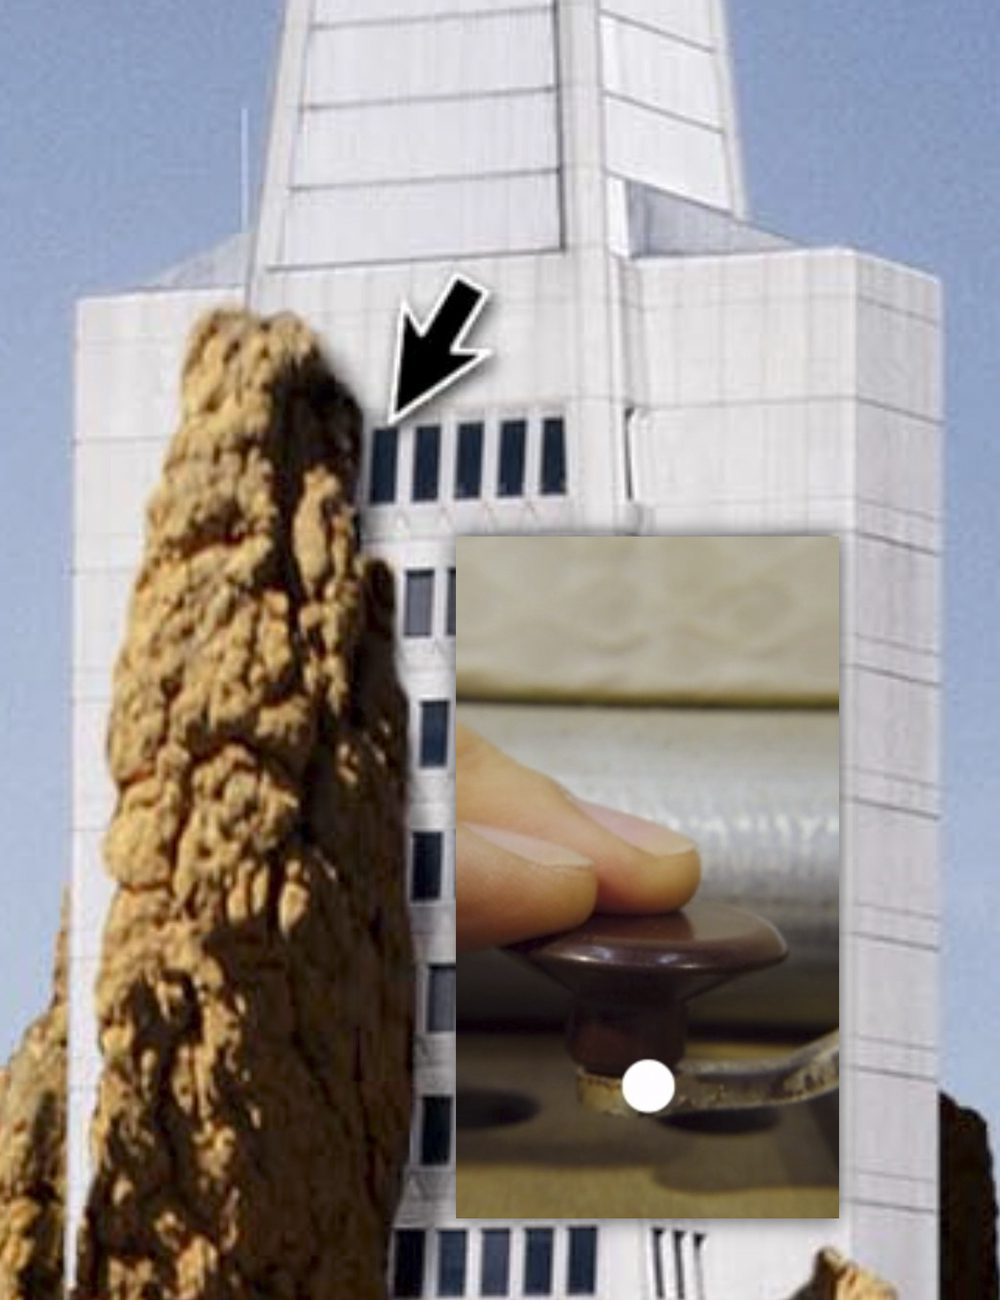 Thumbnail of an iframe that links out to a dynamic digital project by Jeremiah Barber. Primary image is a full-color collage of the Transamerica Building in San Francisco entwined / taken over by a termite mound, with a mouse cursor hovering over it, revealing a pop-up video of two fingers pressing a lever.